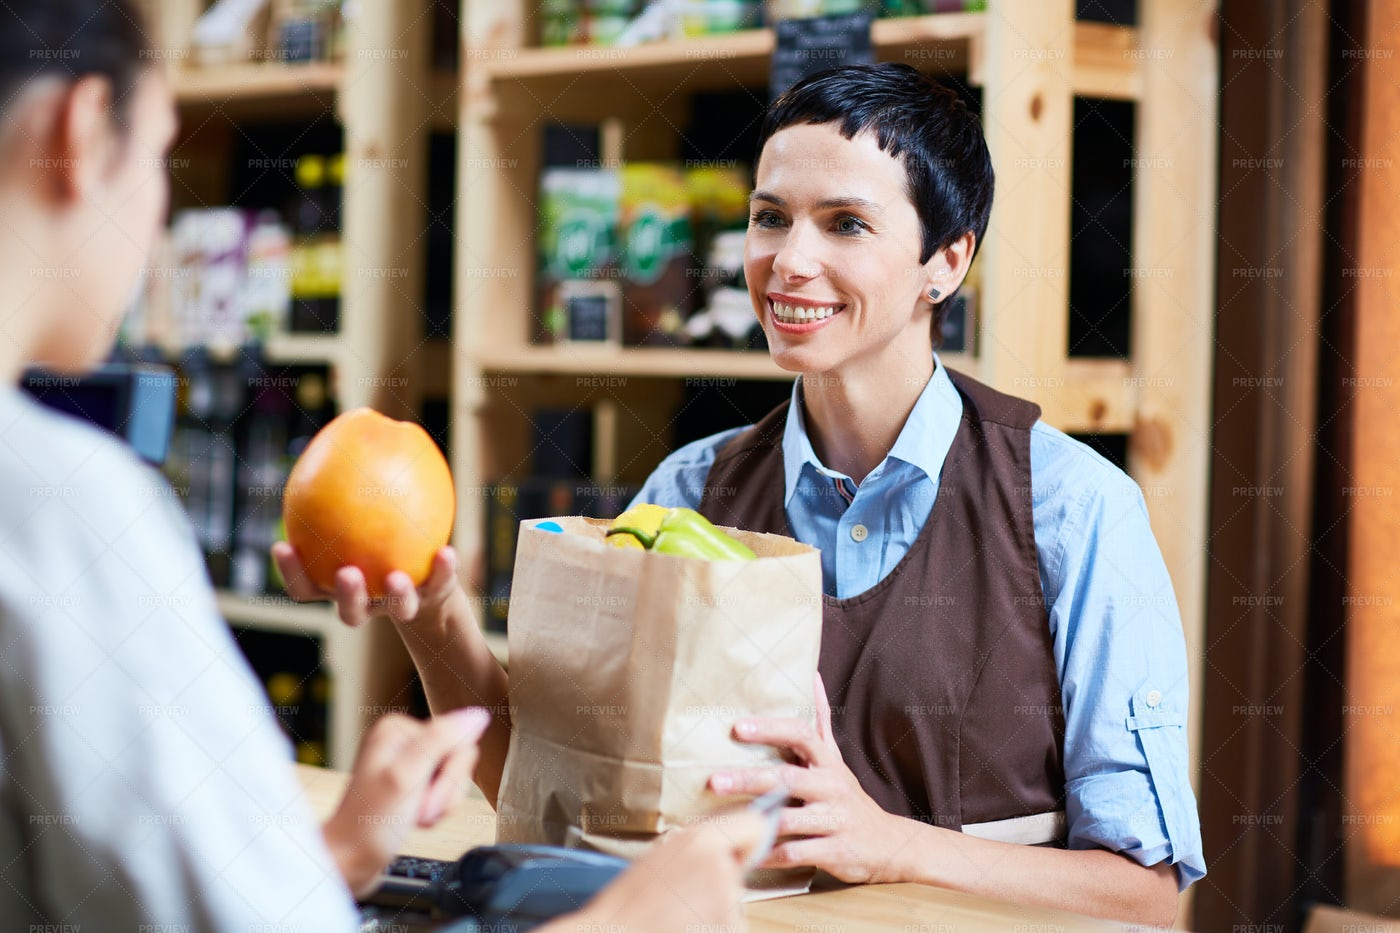 Attending To Customer In Grocery Store: Stock Photos